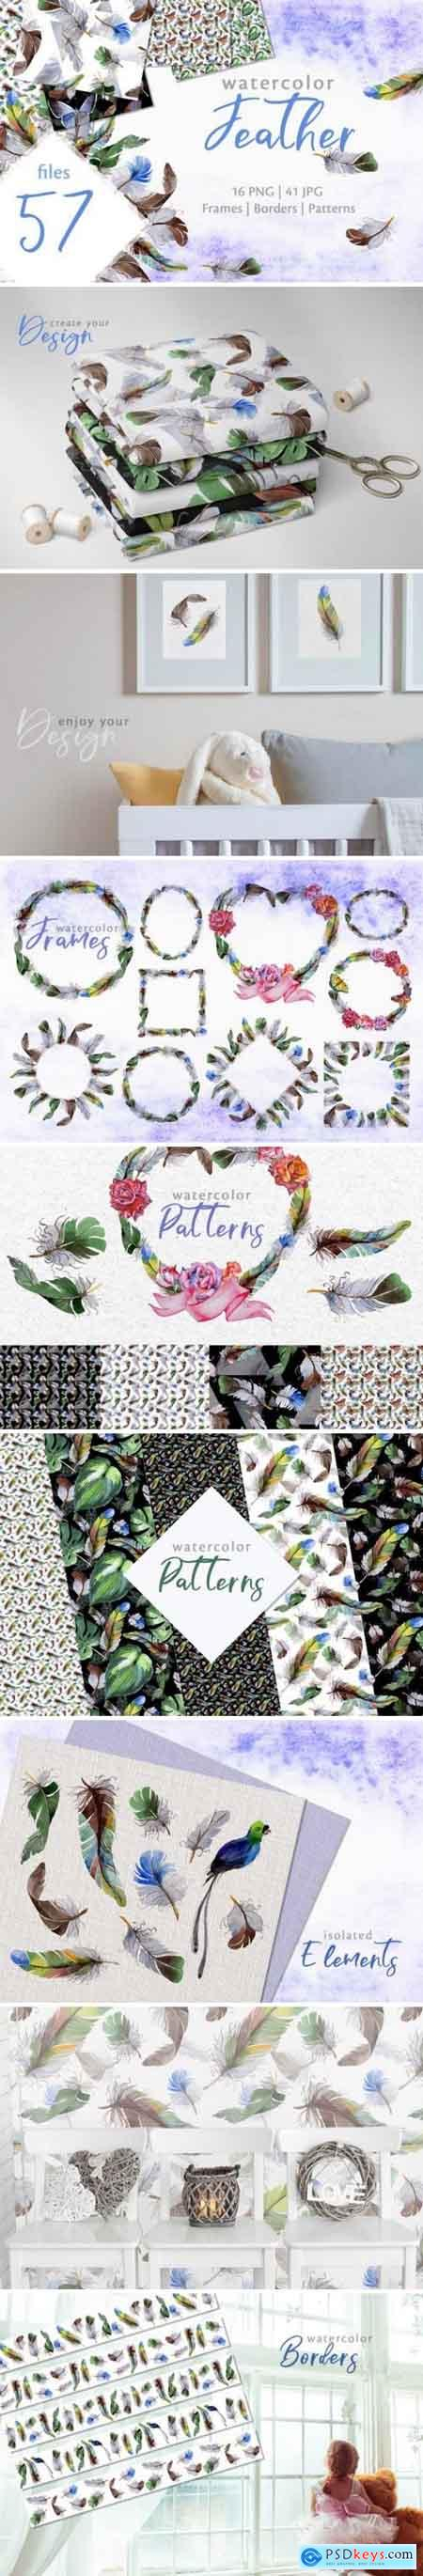 Creativemarket Feather Watercolor png